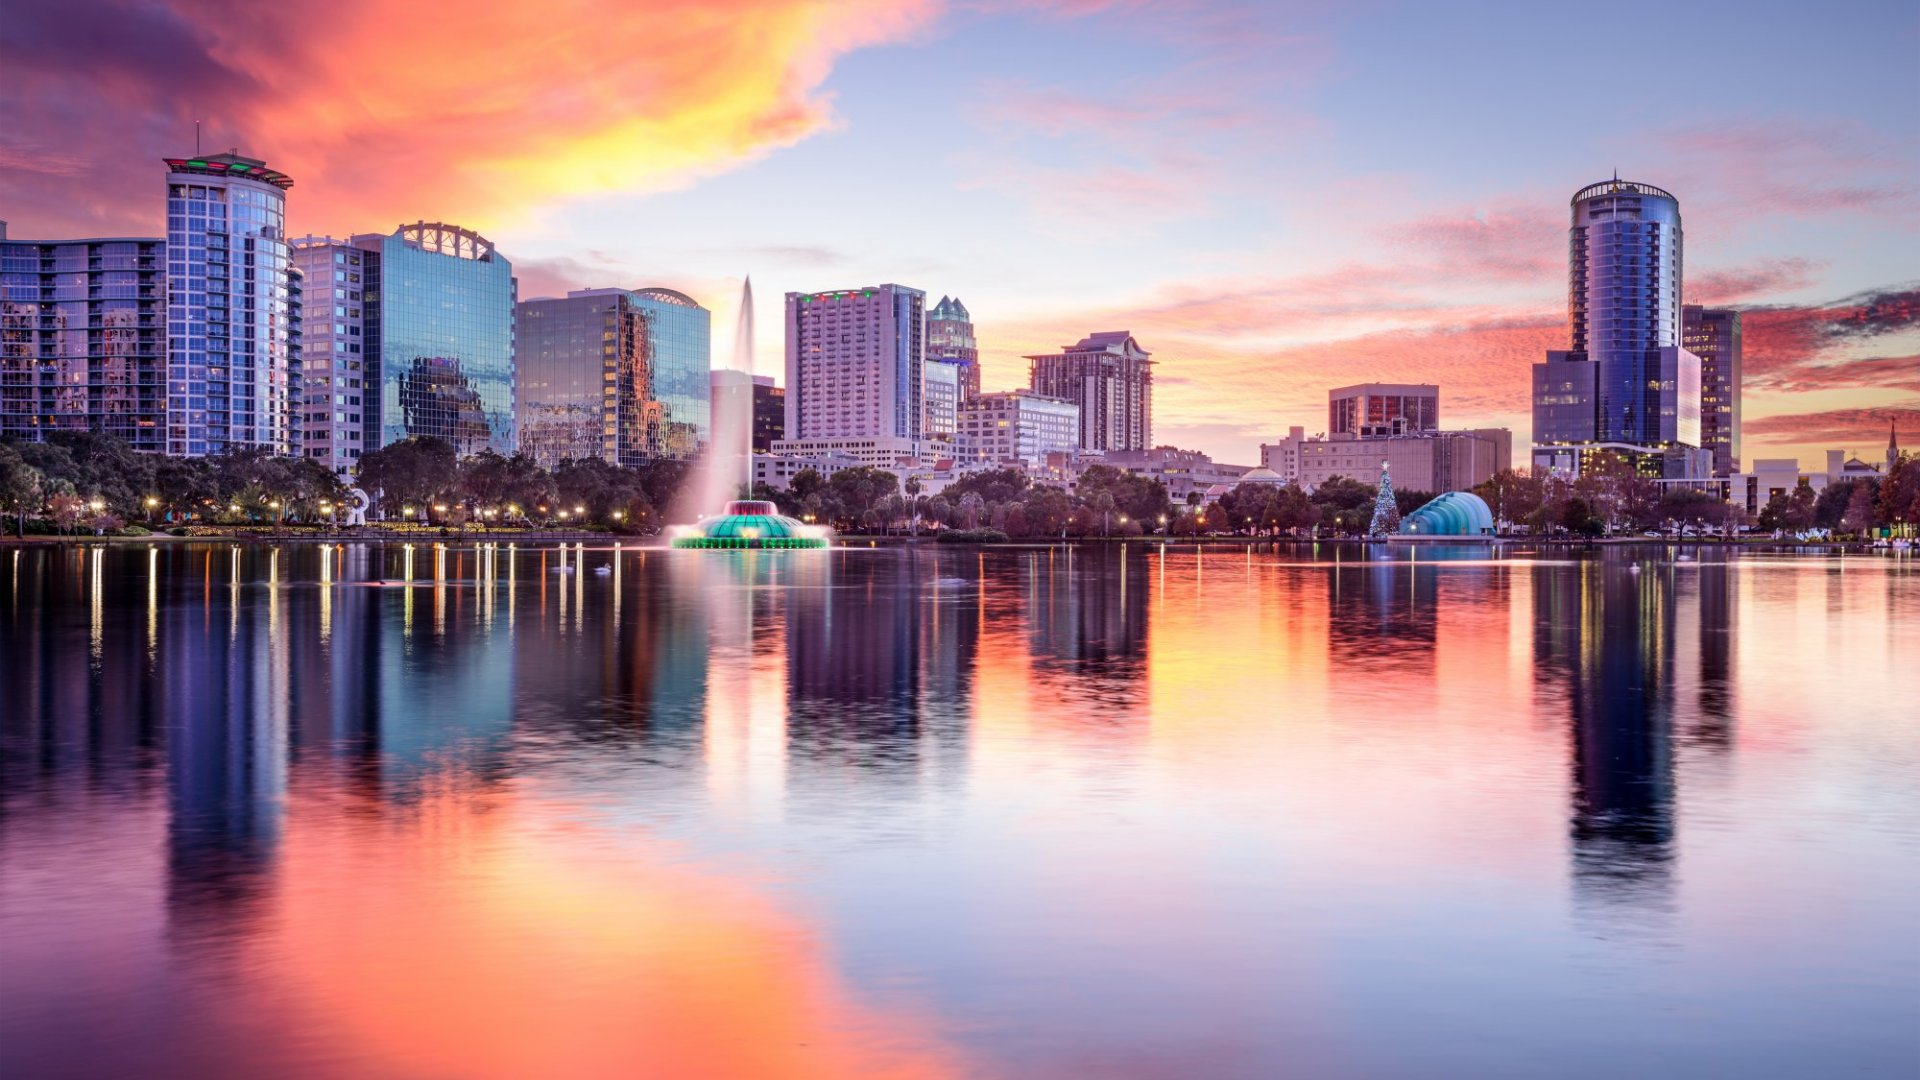 People Are Leaving Silicon Valley and Orlando Might Be the Next Hot Spot